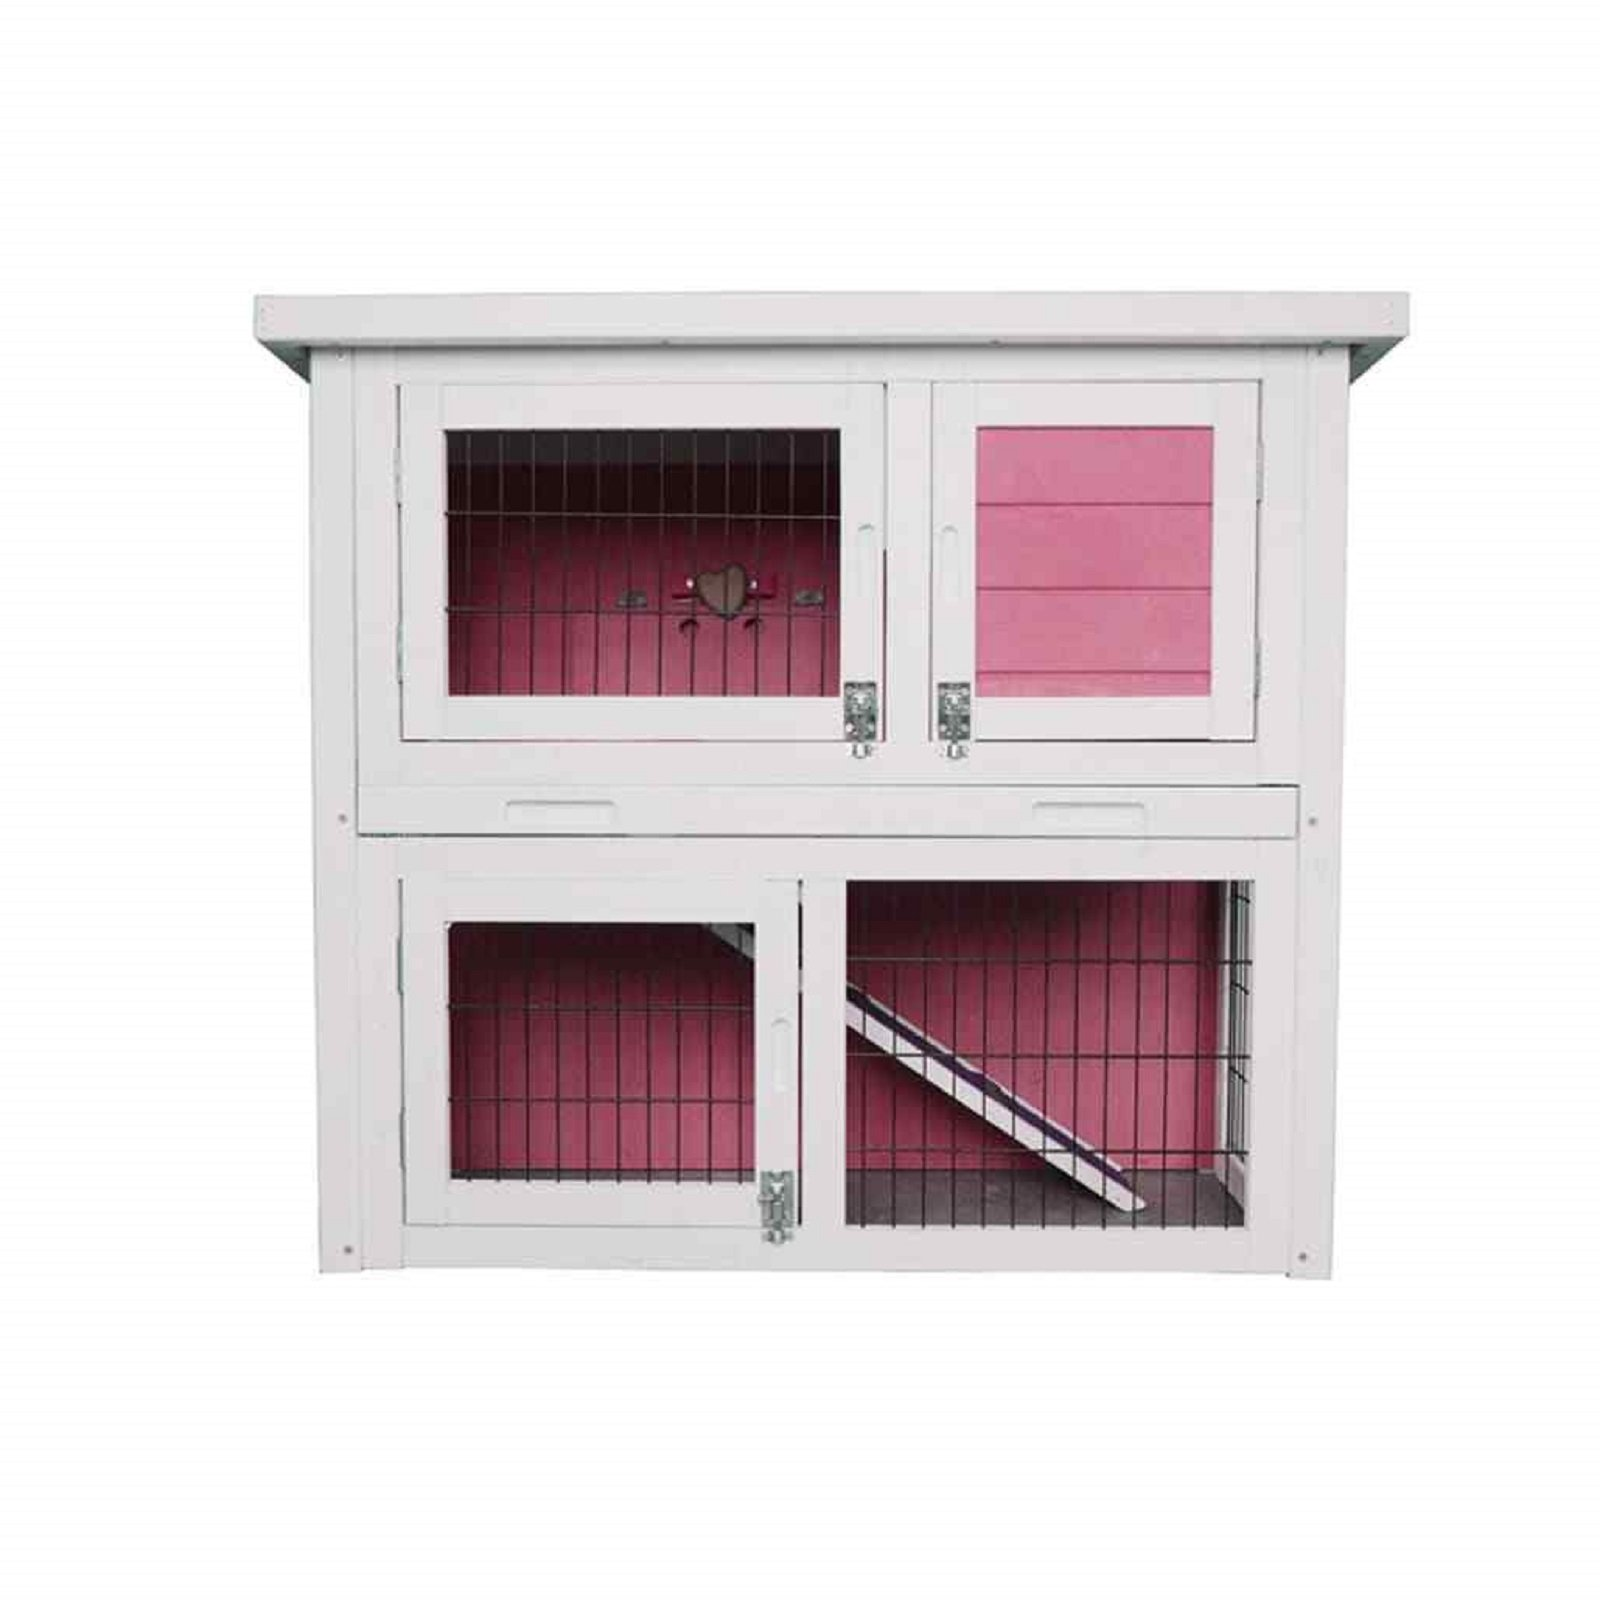 HOT! 32'' Wooden Rabbit Hutch Small Animal House Pet Cage Coop Pink